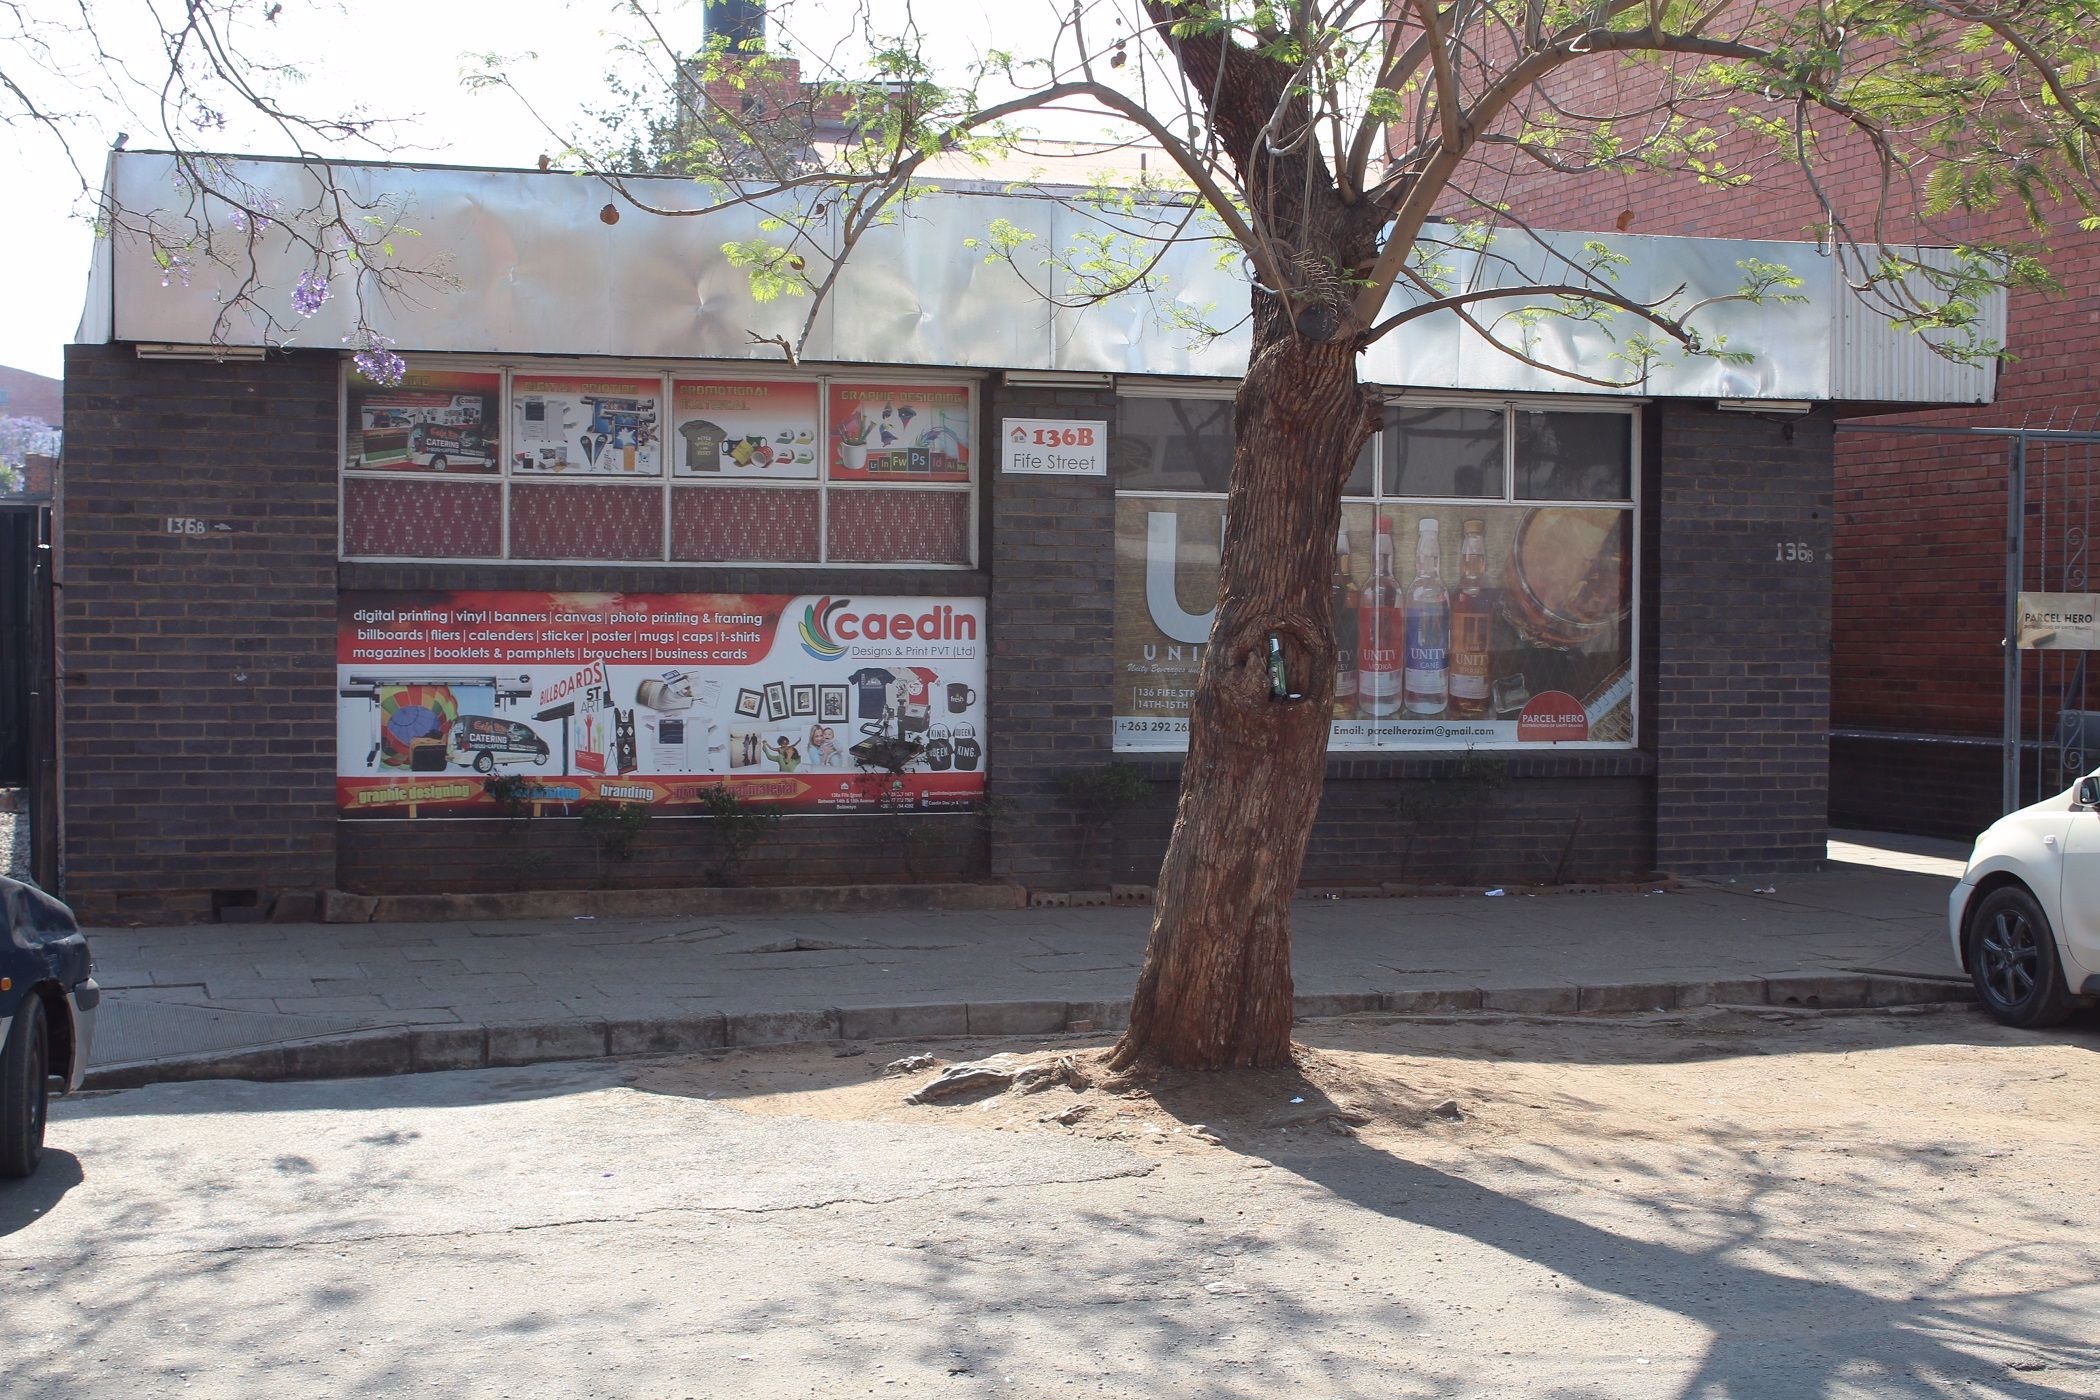 Commercial business for sale in Matabeleland North (Zimbabwe)